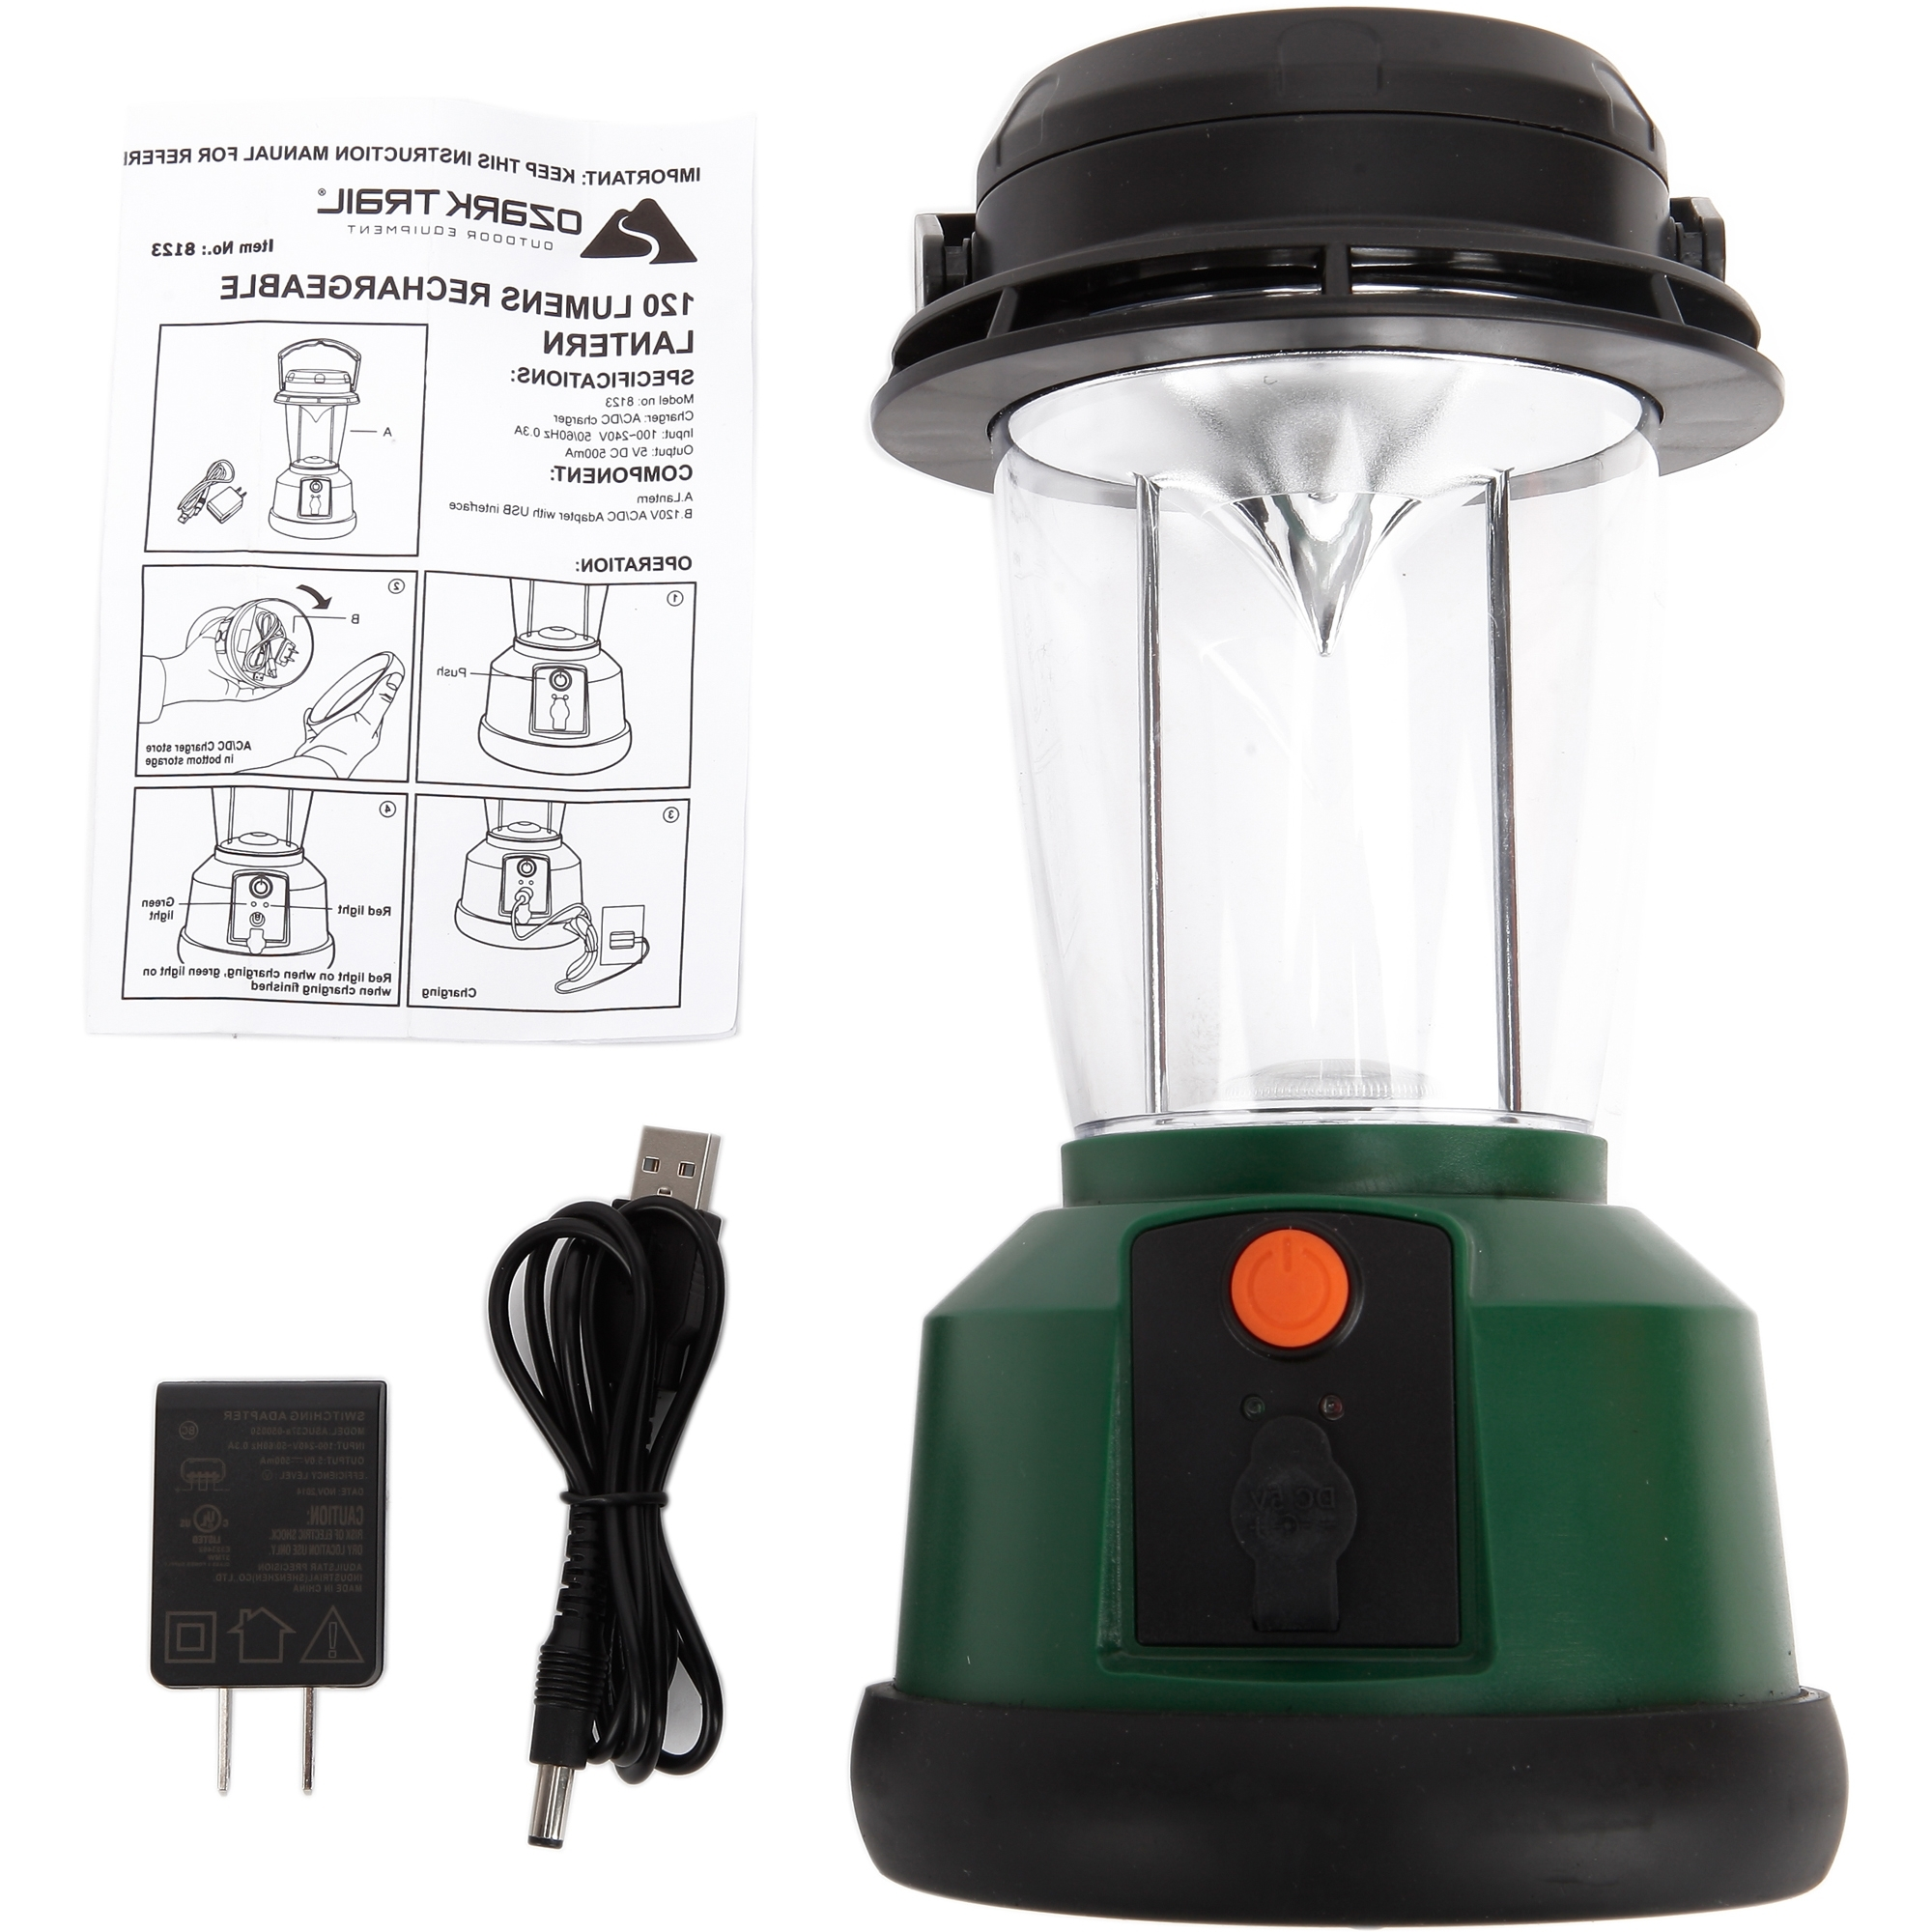 Outdoor Rechargeable Lanterns With Regard To Fashionable Led Rechargeable Lantern With 3 Mods And Usb Interface, 120 Lumens (View 15 of 20)